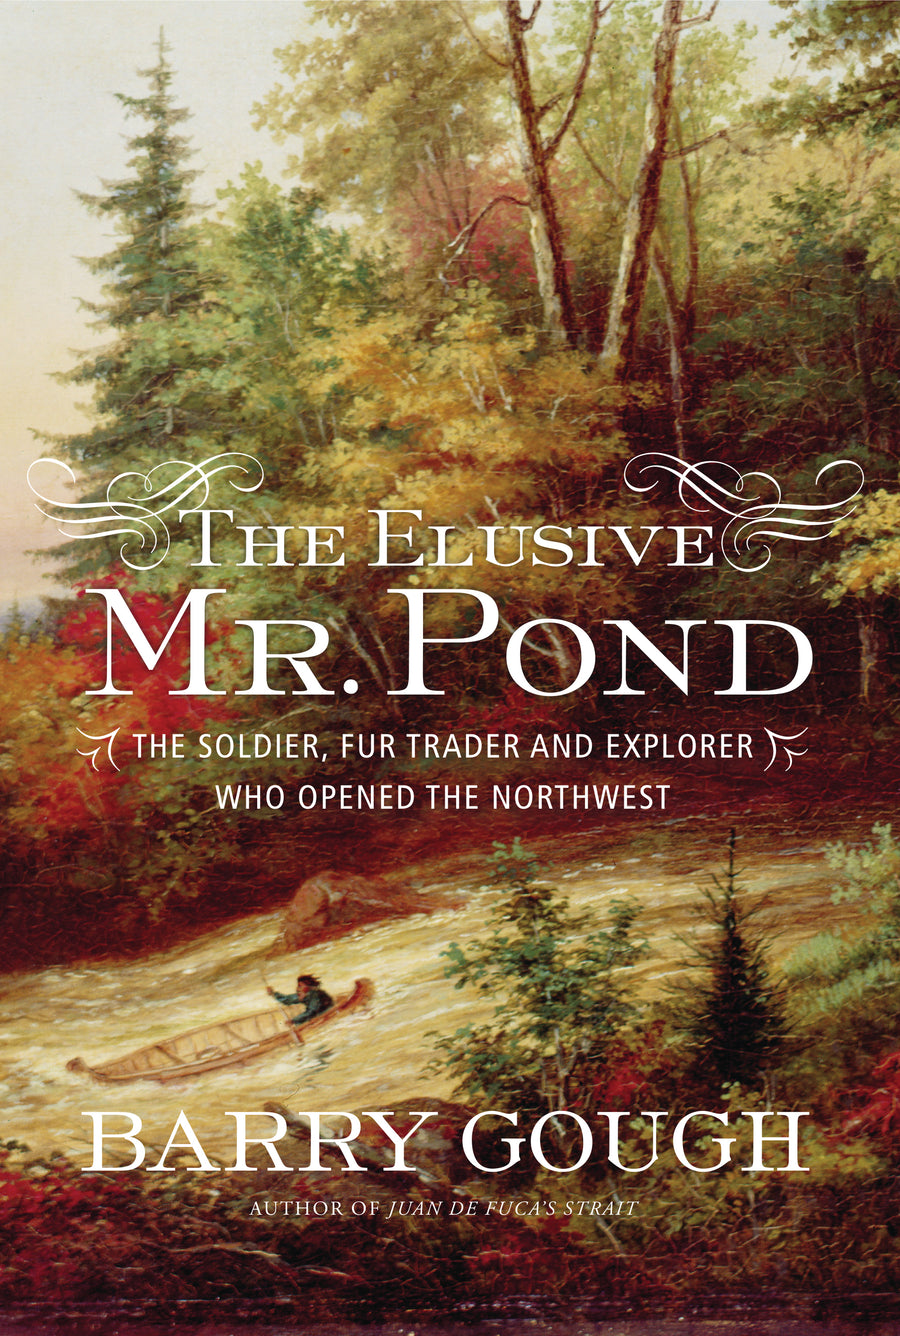 The Elusive Mr. Pond : The Soldier, Fur Trader and Explorer Who Opened the Northwest